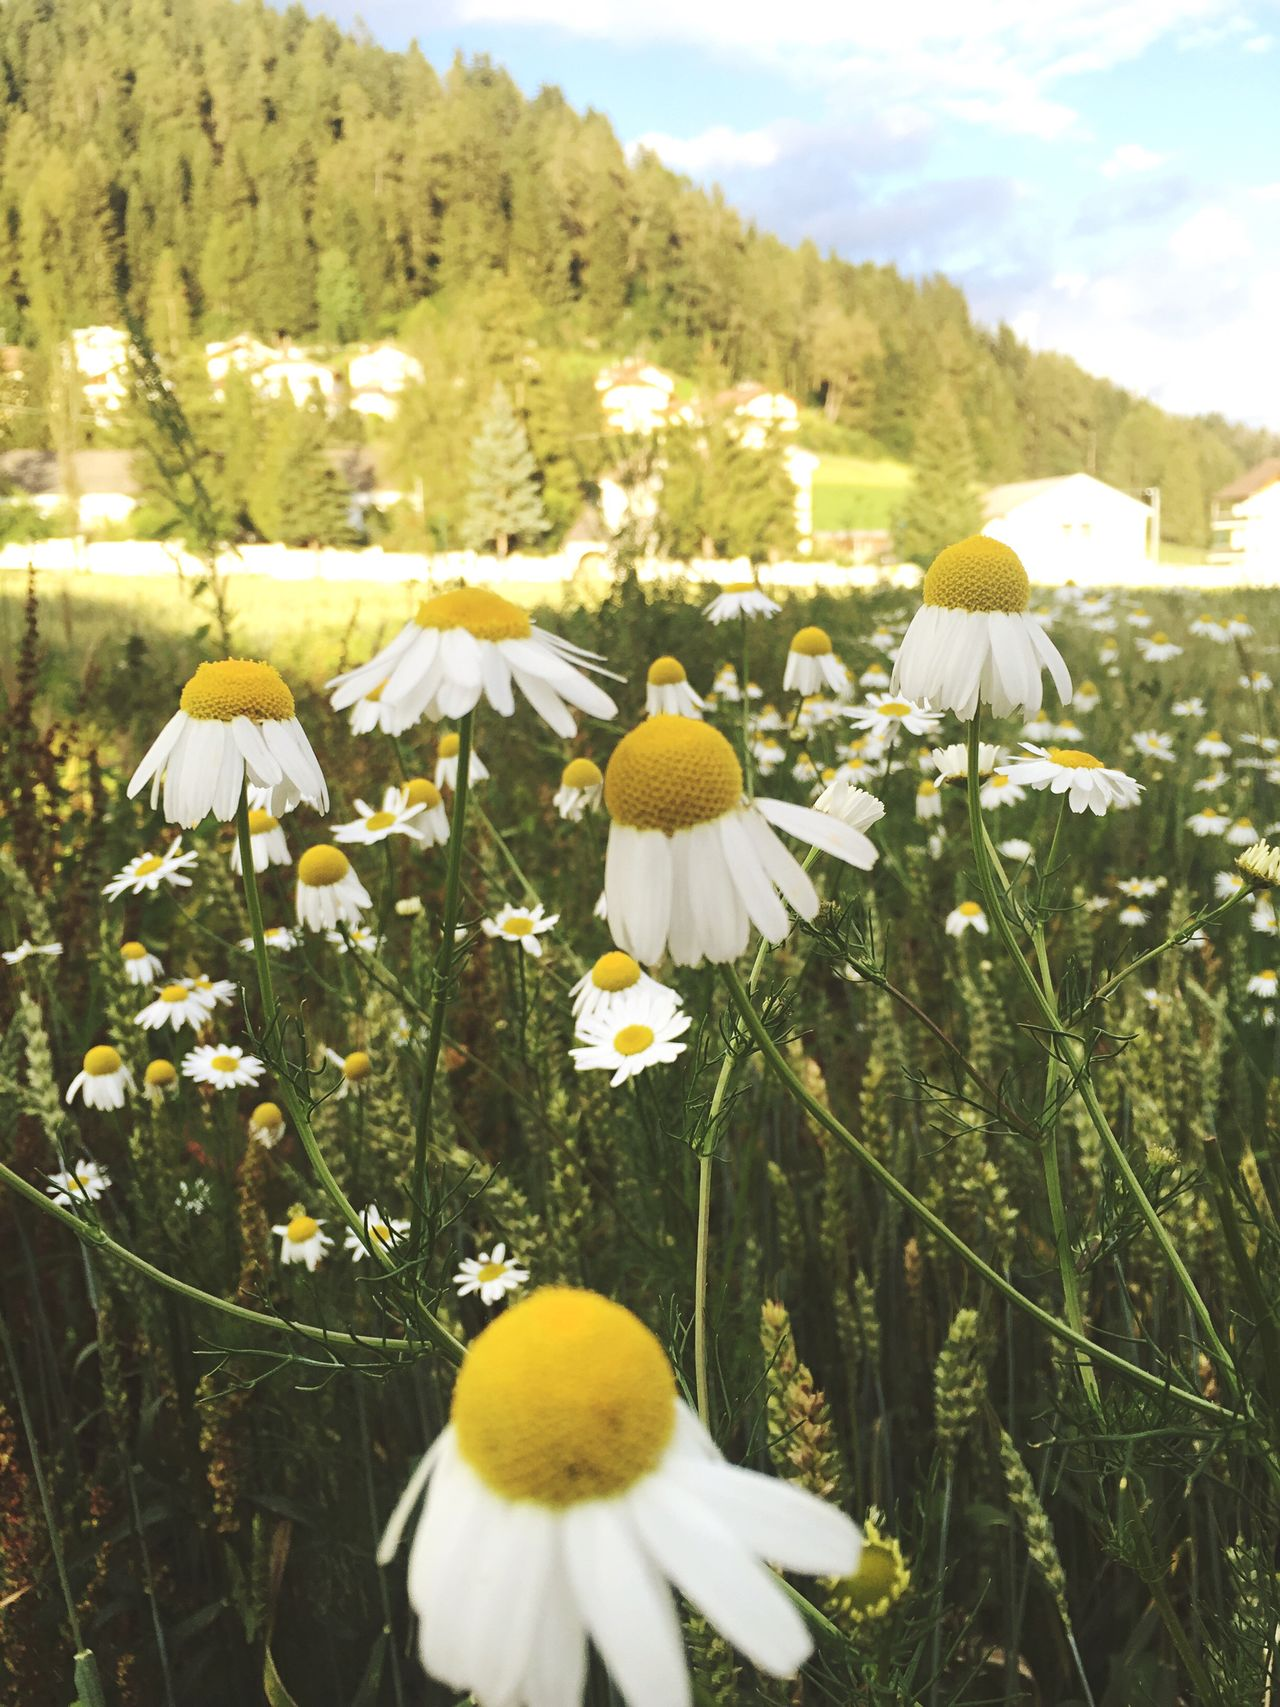 Chamomile Flower Fragility Freshness Growth Yellow Beauty In Nature Close-up White Petal Field Rural Scene Mountain Stem Nature Plant Daisy Travel Destinations Abundance Growing Agriculture Trentino  Val Pusteria